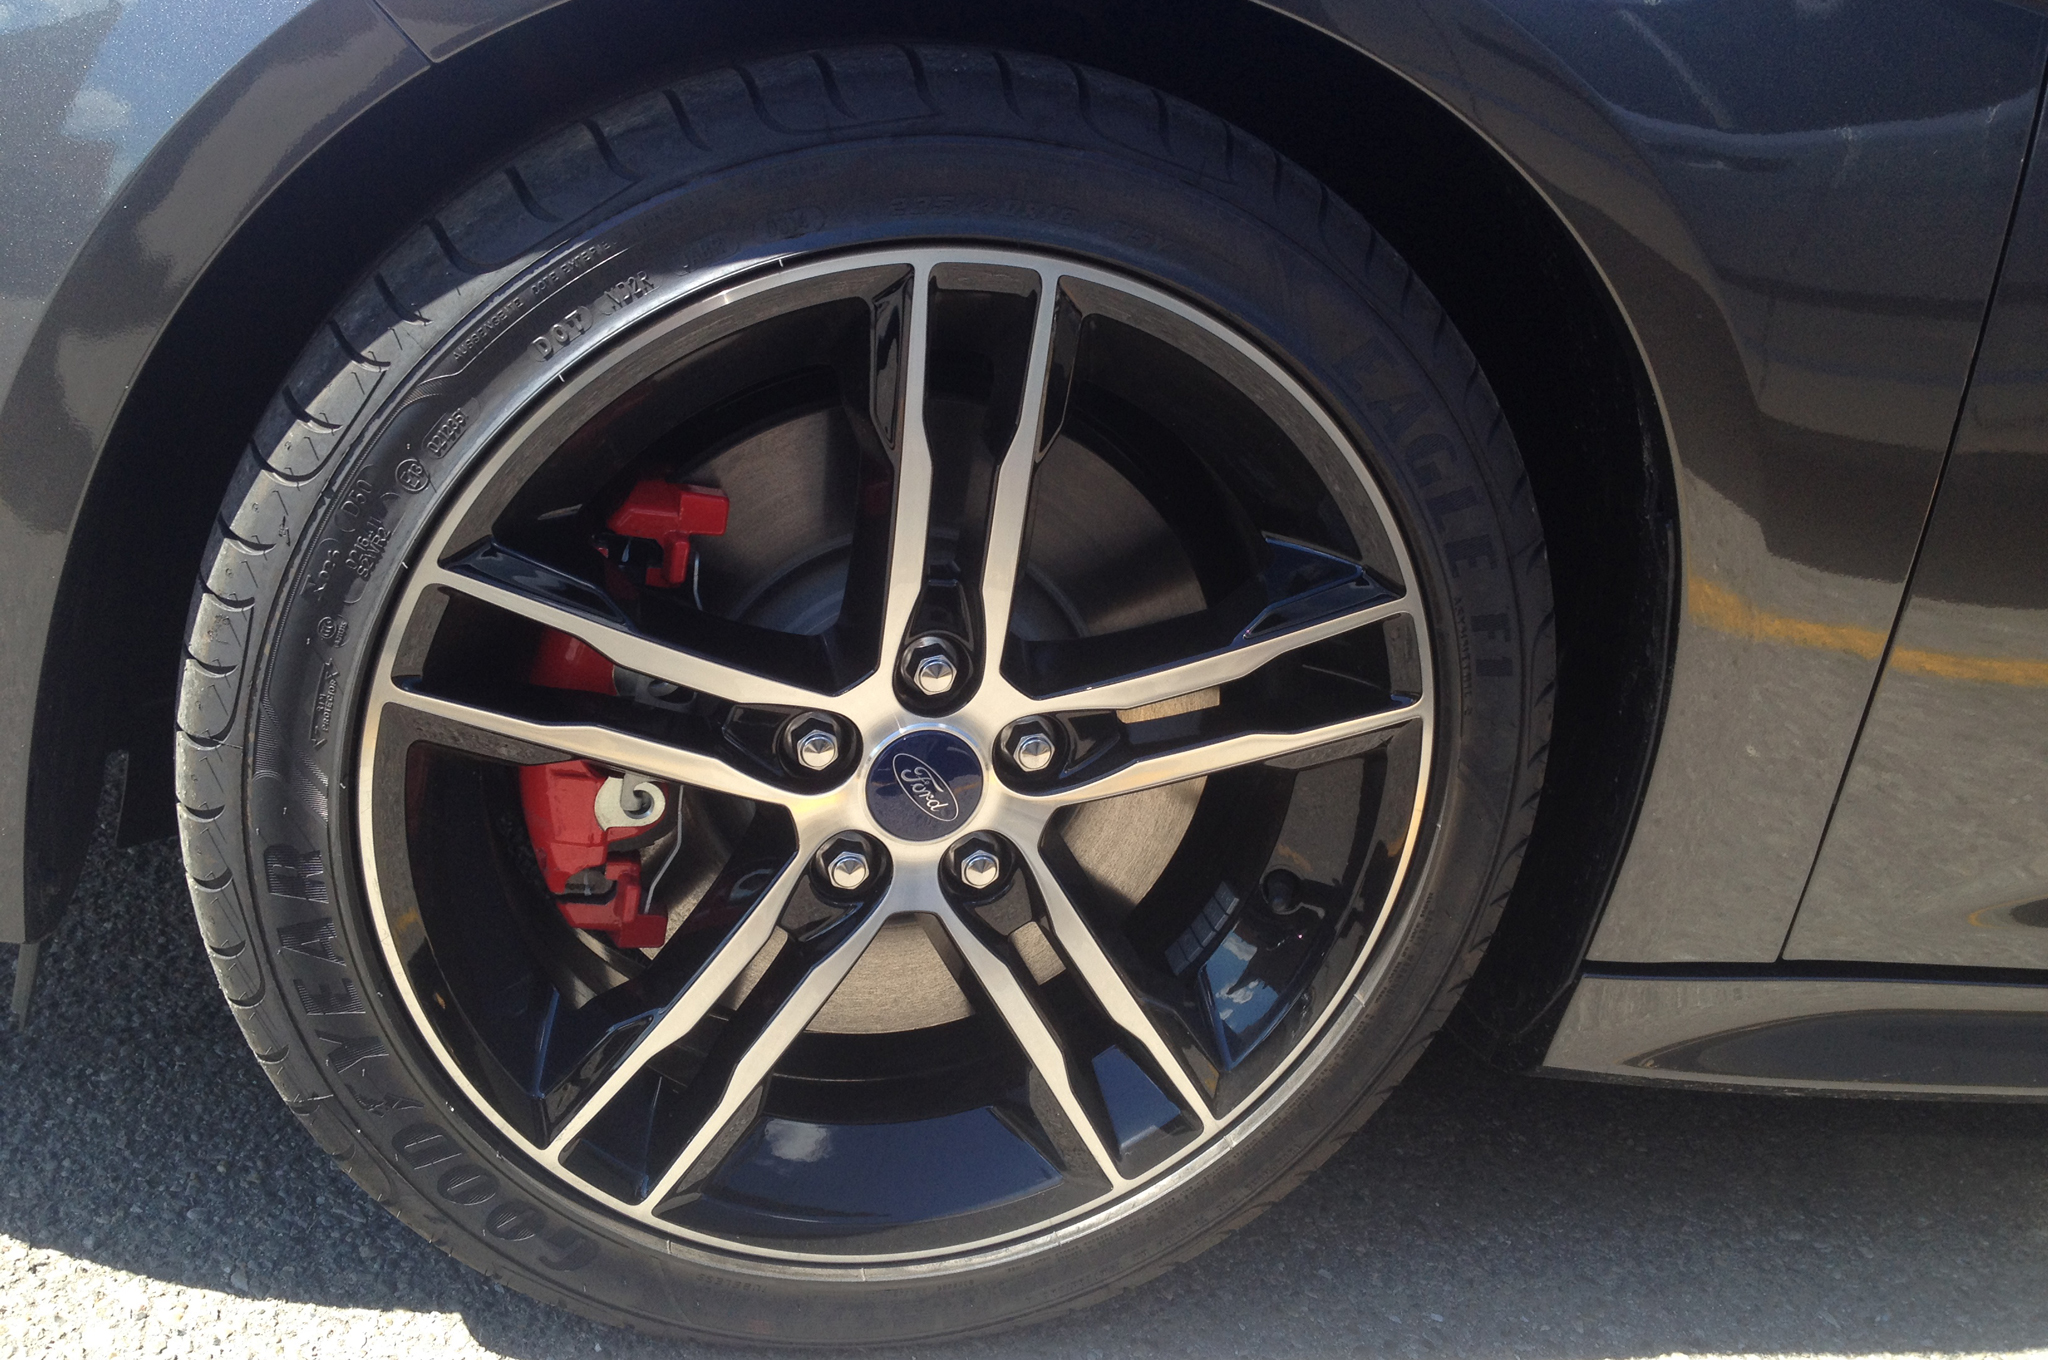 2GFusions Will Focus ST rims fit on a Fusion